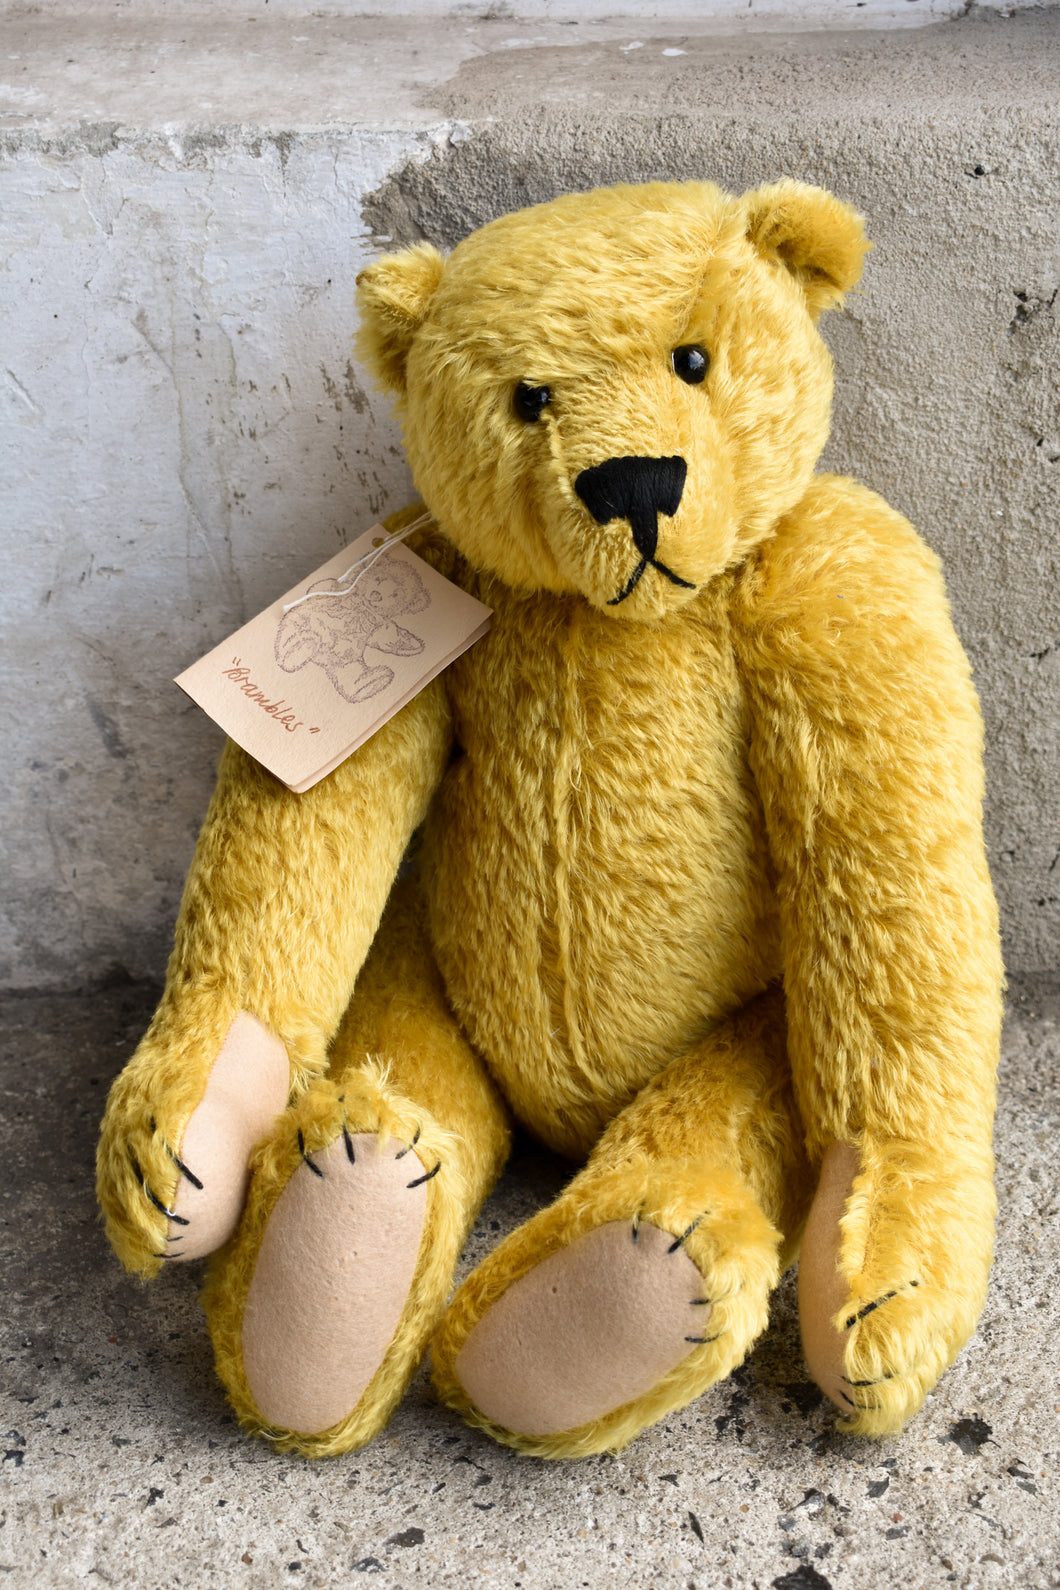 Brambles Scottish collectors teddy